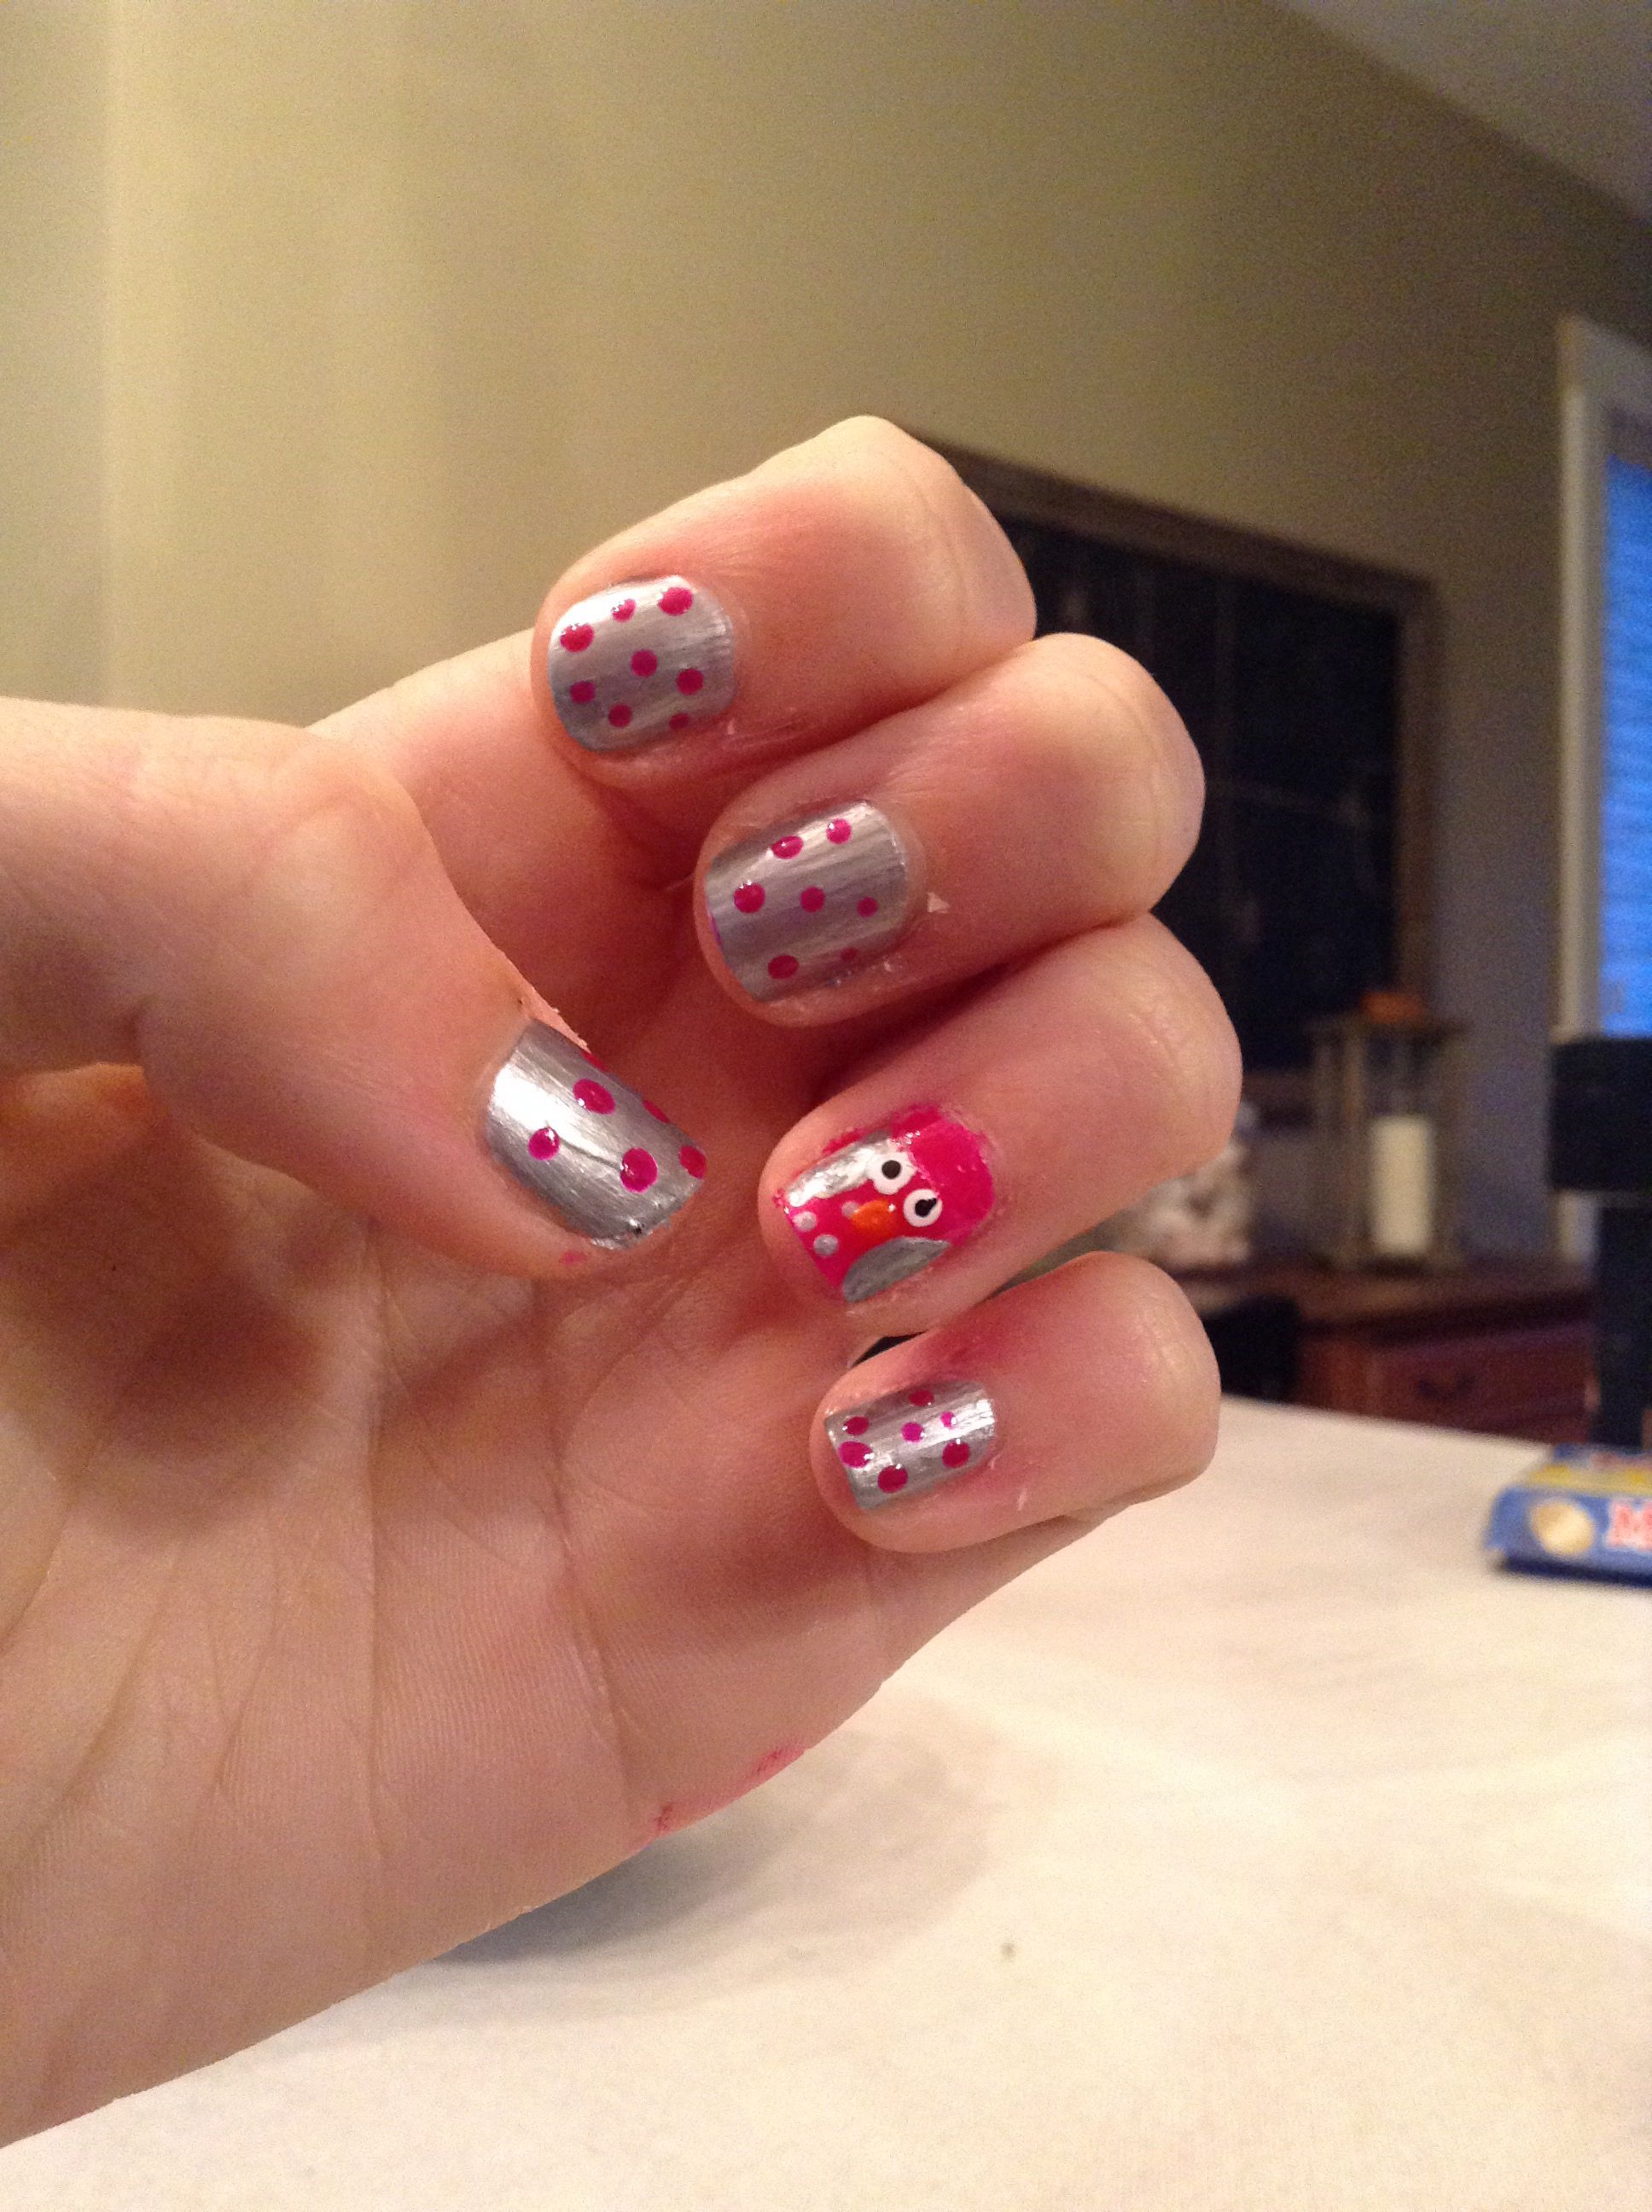 Easy nail design with the klutz nail studio Love these